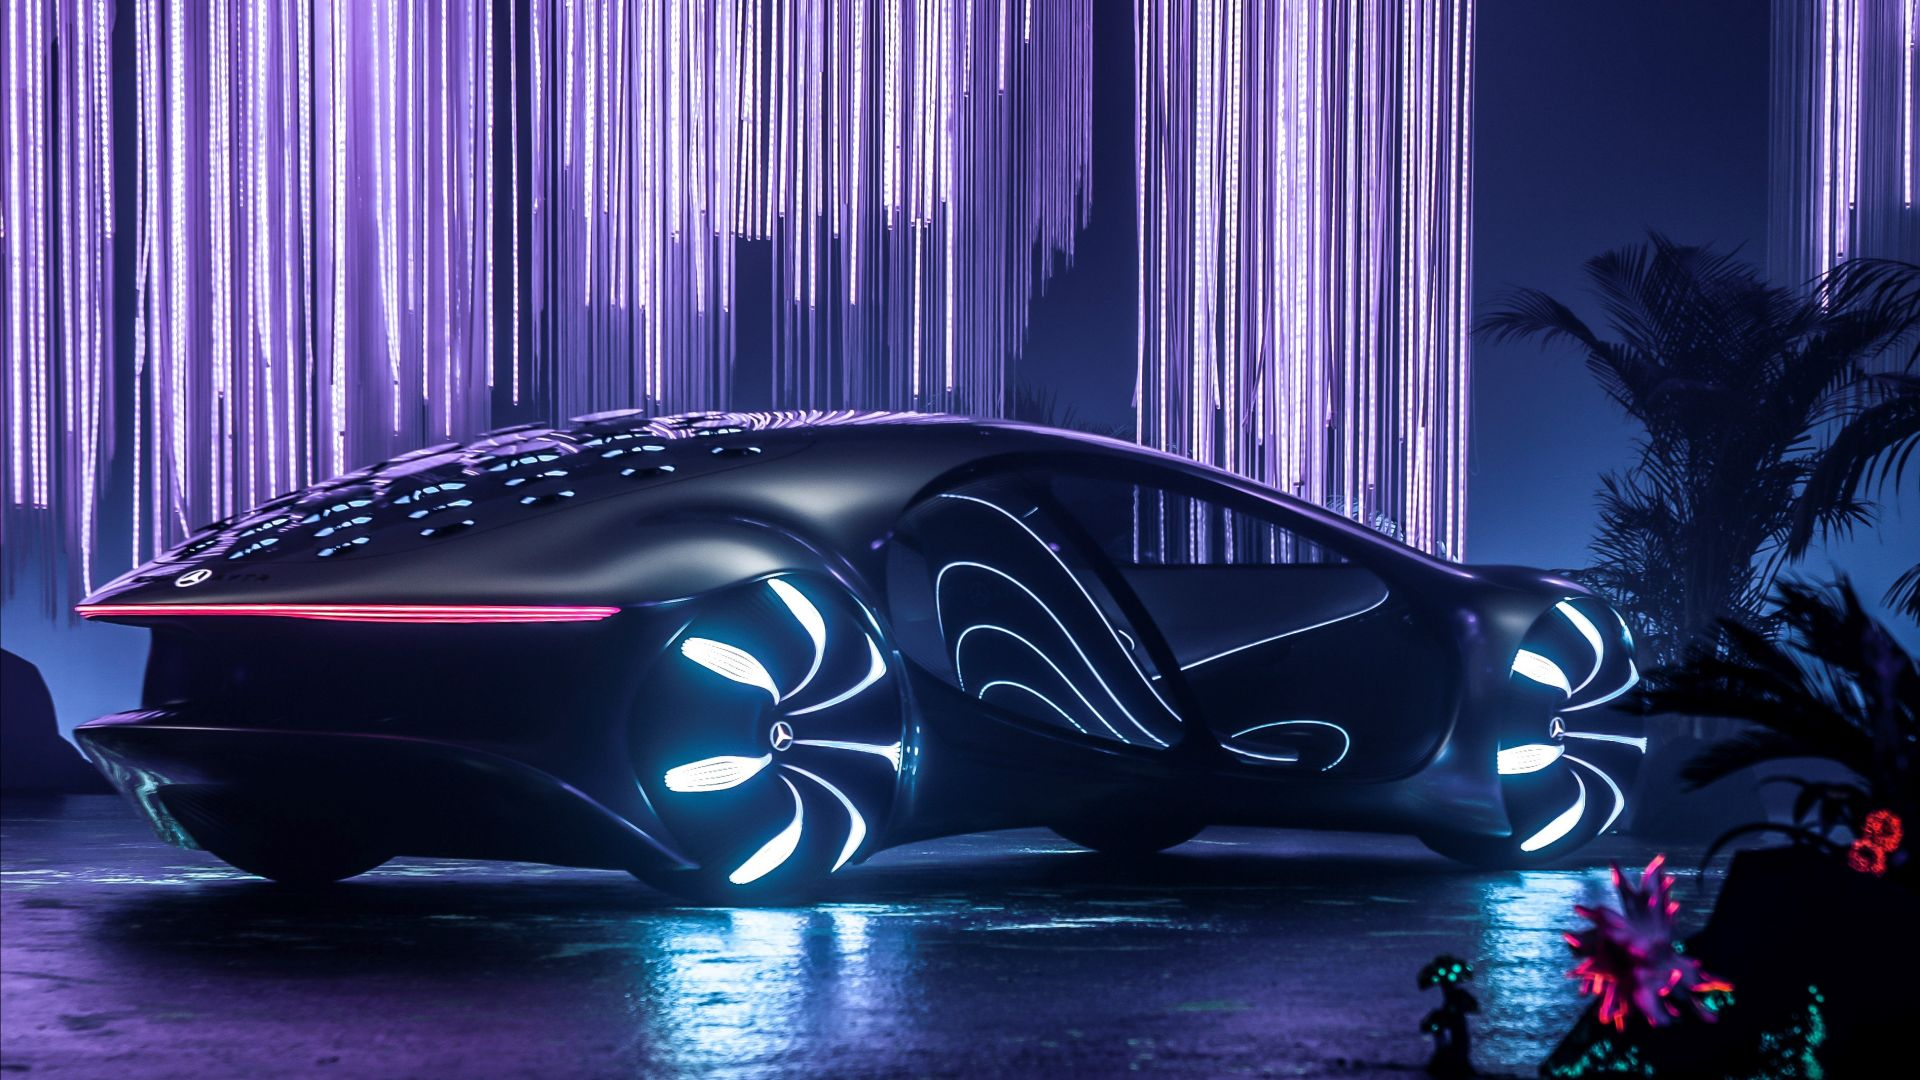 Mercedes-Benz VISION AVTR, CES 2020, electric cars, 4K, Mercedes-Benz VISION AVTR, CES 2020, electric cars, 4K (horizontal)